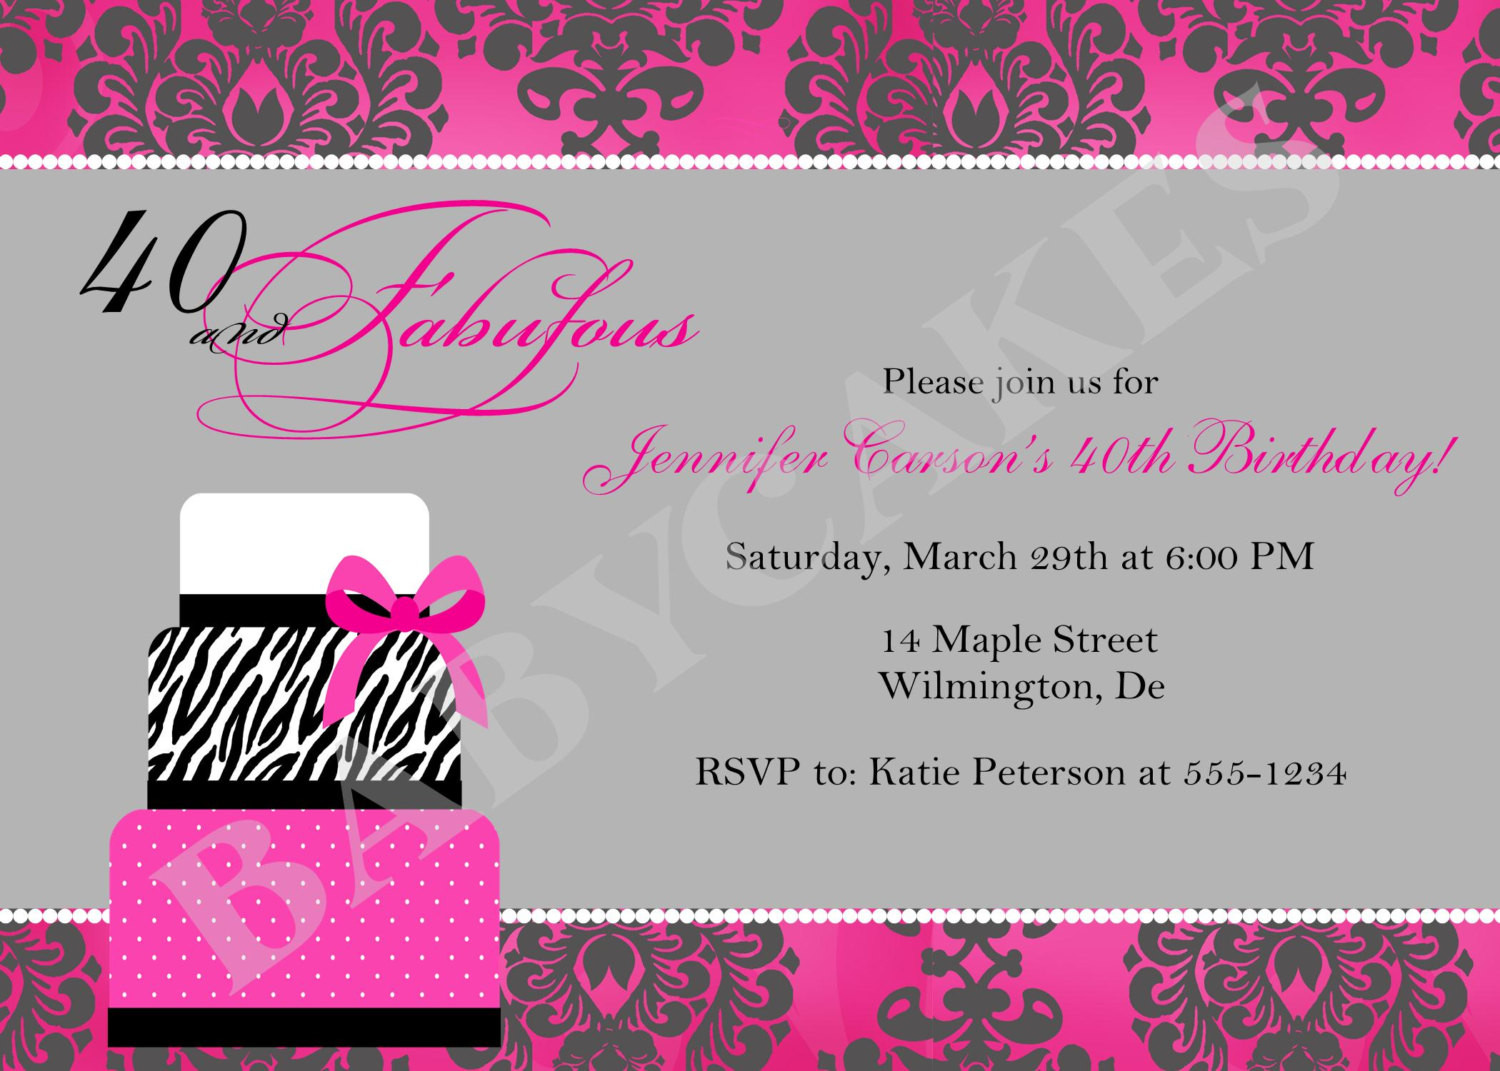 Best ideas about 40th Birthday Invitations . Save or Pin 40th Birthday Invitation Wording Template Now.